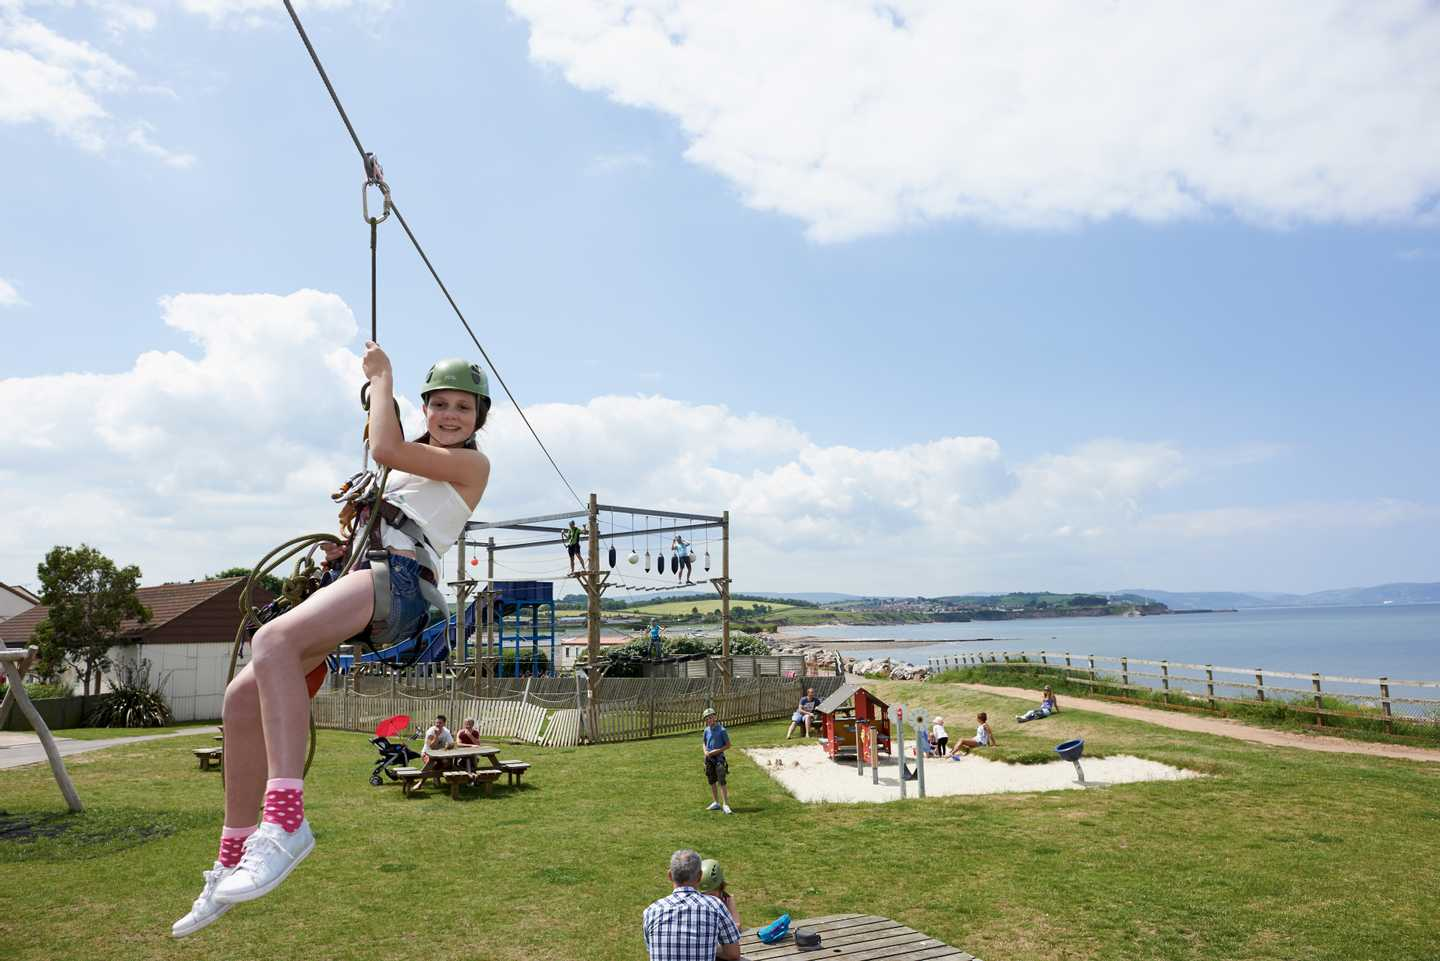 A guest on the zip wire at Doniford Bay